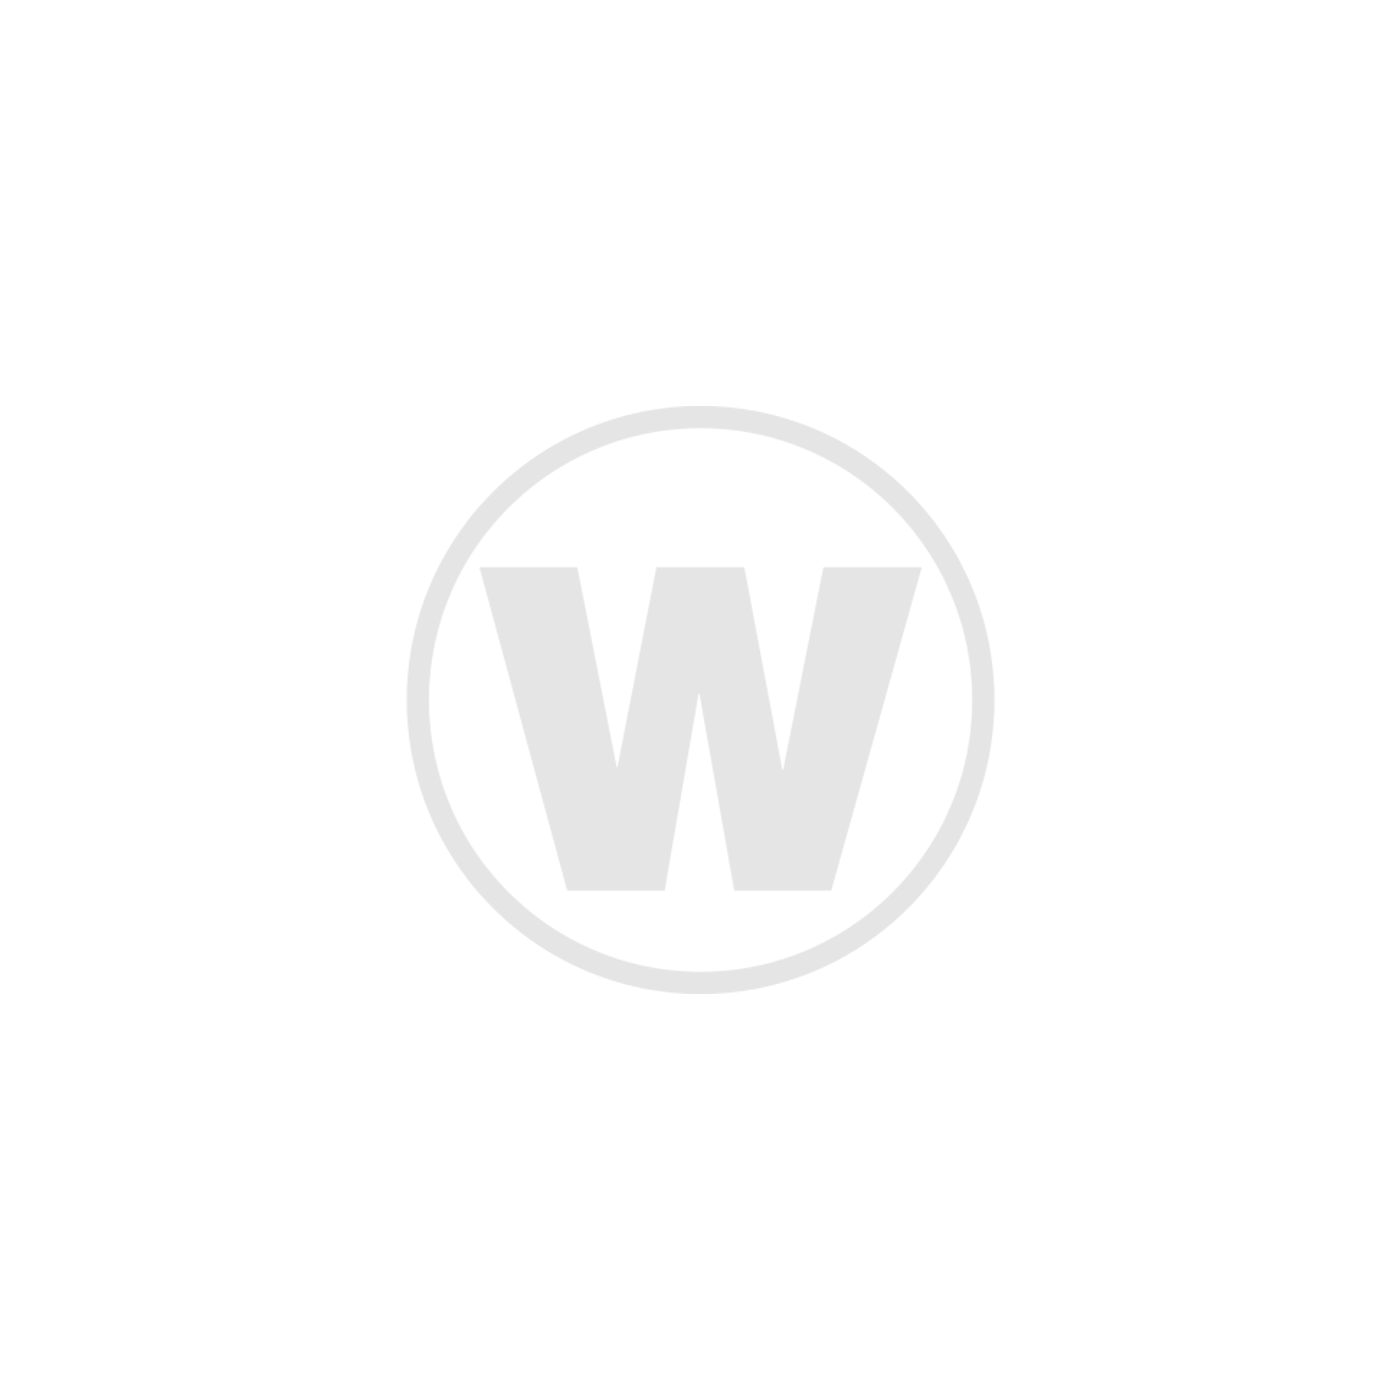 Ardbeg 14 Year Old Single Cask #4578 Cask Strength - Exclusive for Sweden